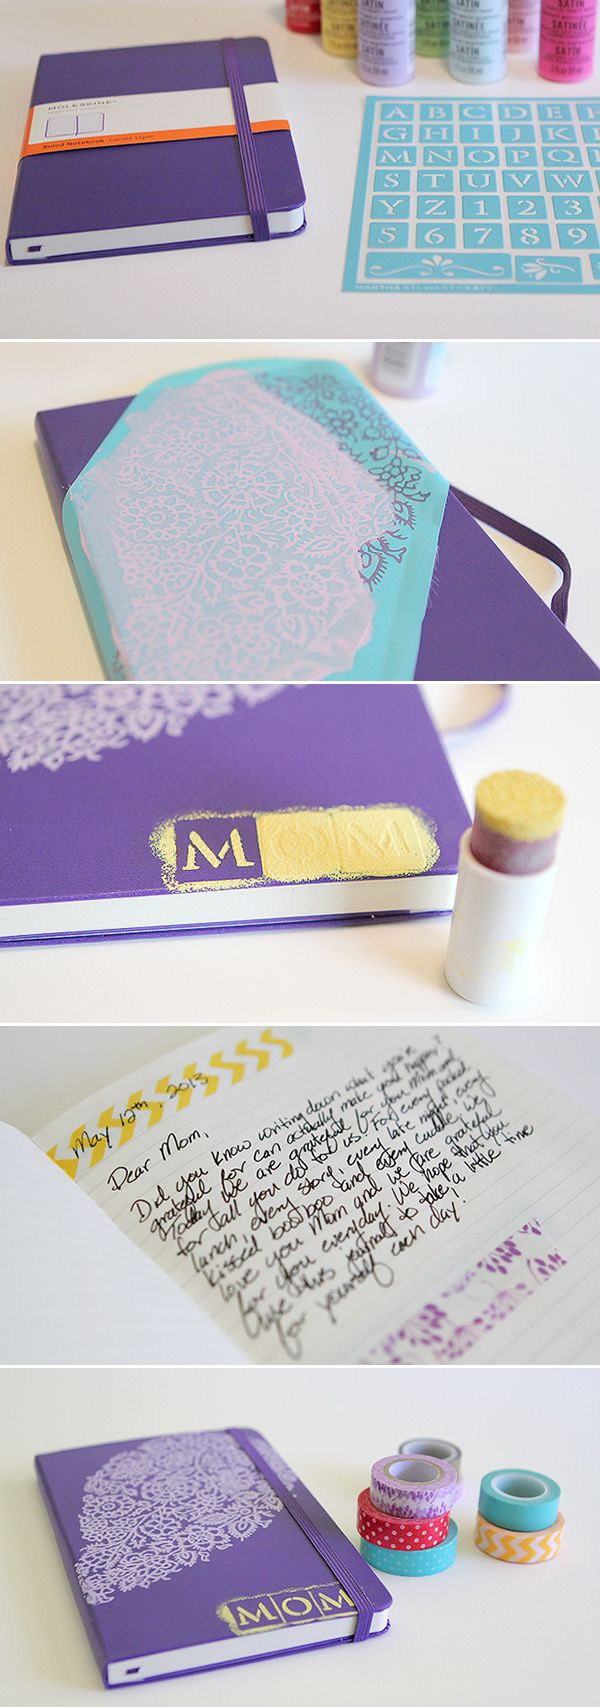 DIY Gratitude Journal Make A With Fine Crafty Touch And Decoration For Mothers